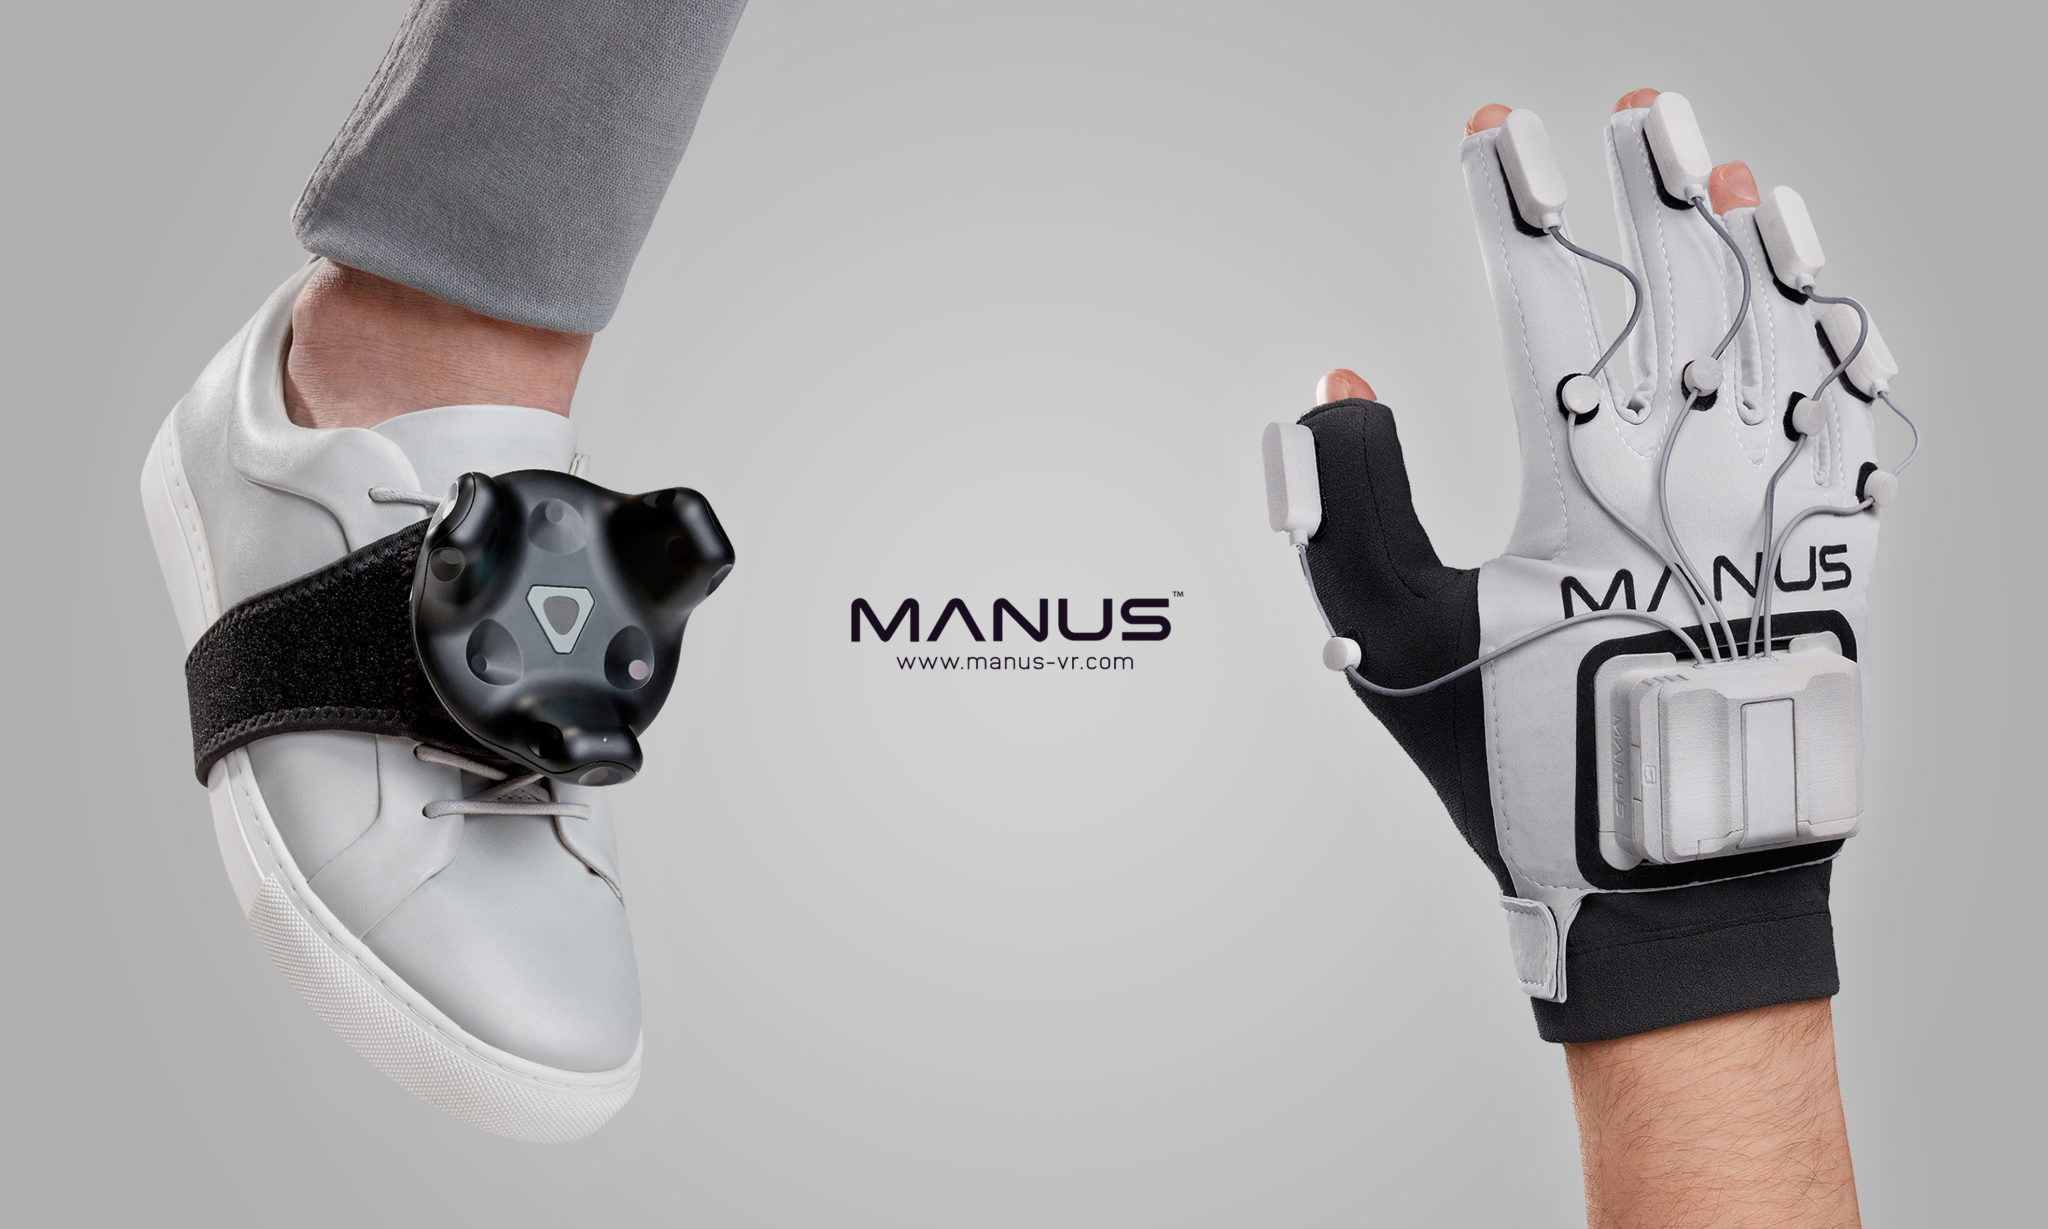 Manus launches Polygon full-body tracking for Virtual Reality, as well as its Prime II gloves for VR | Auganix.org